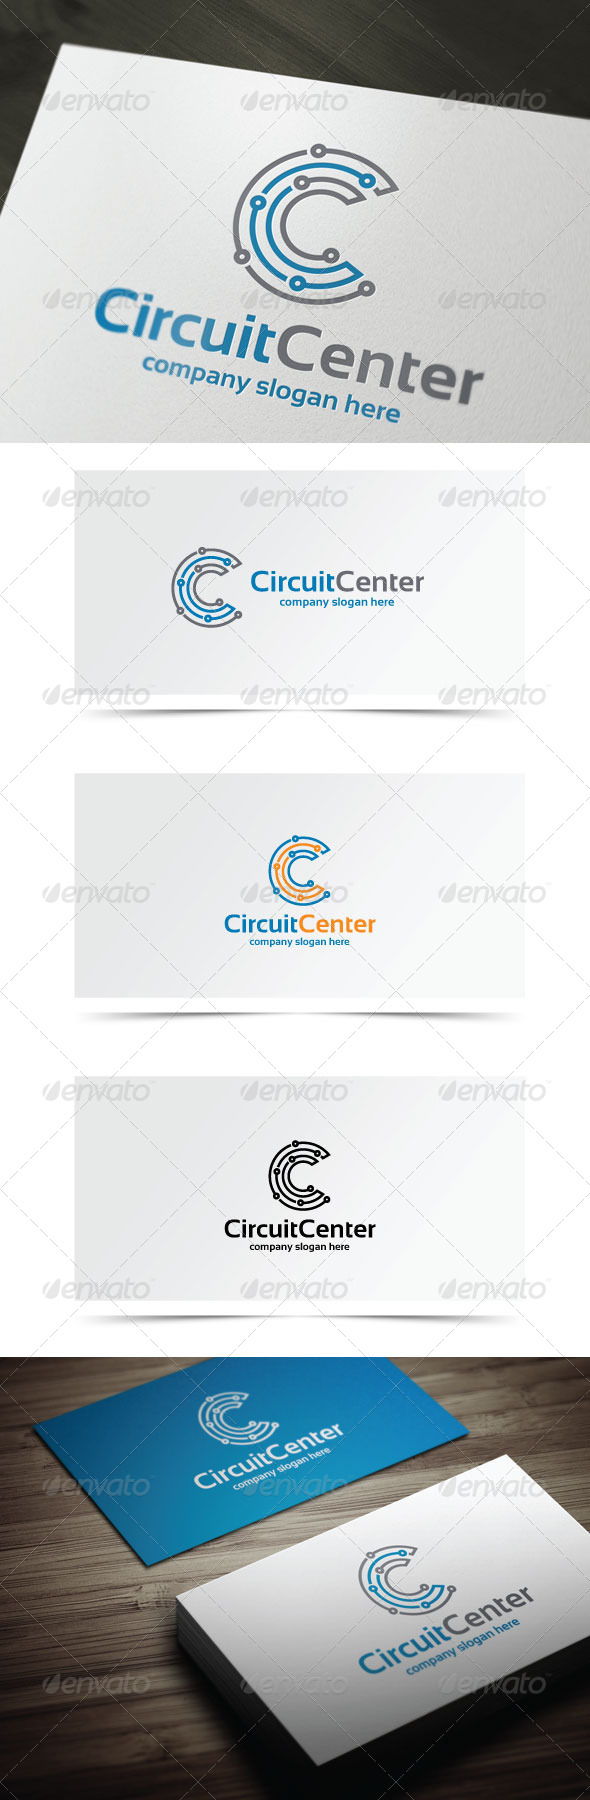 GraphicRiver Circuit Center 8512345